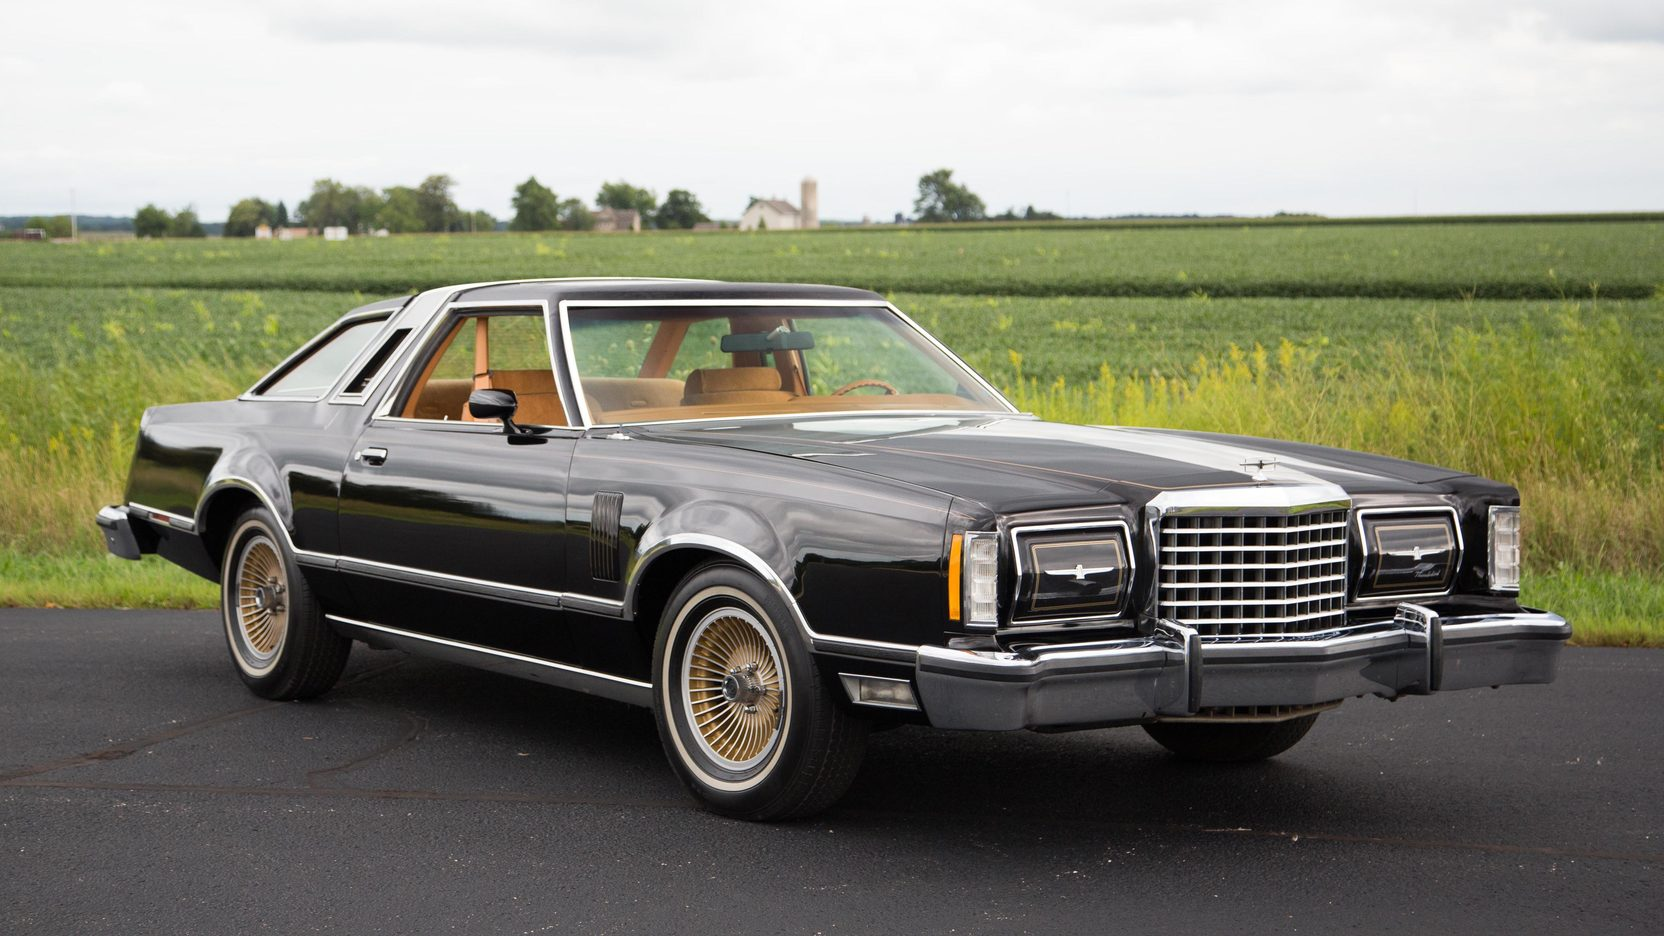 1978 Ford Thunderbird 3/4 front